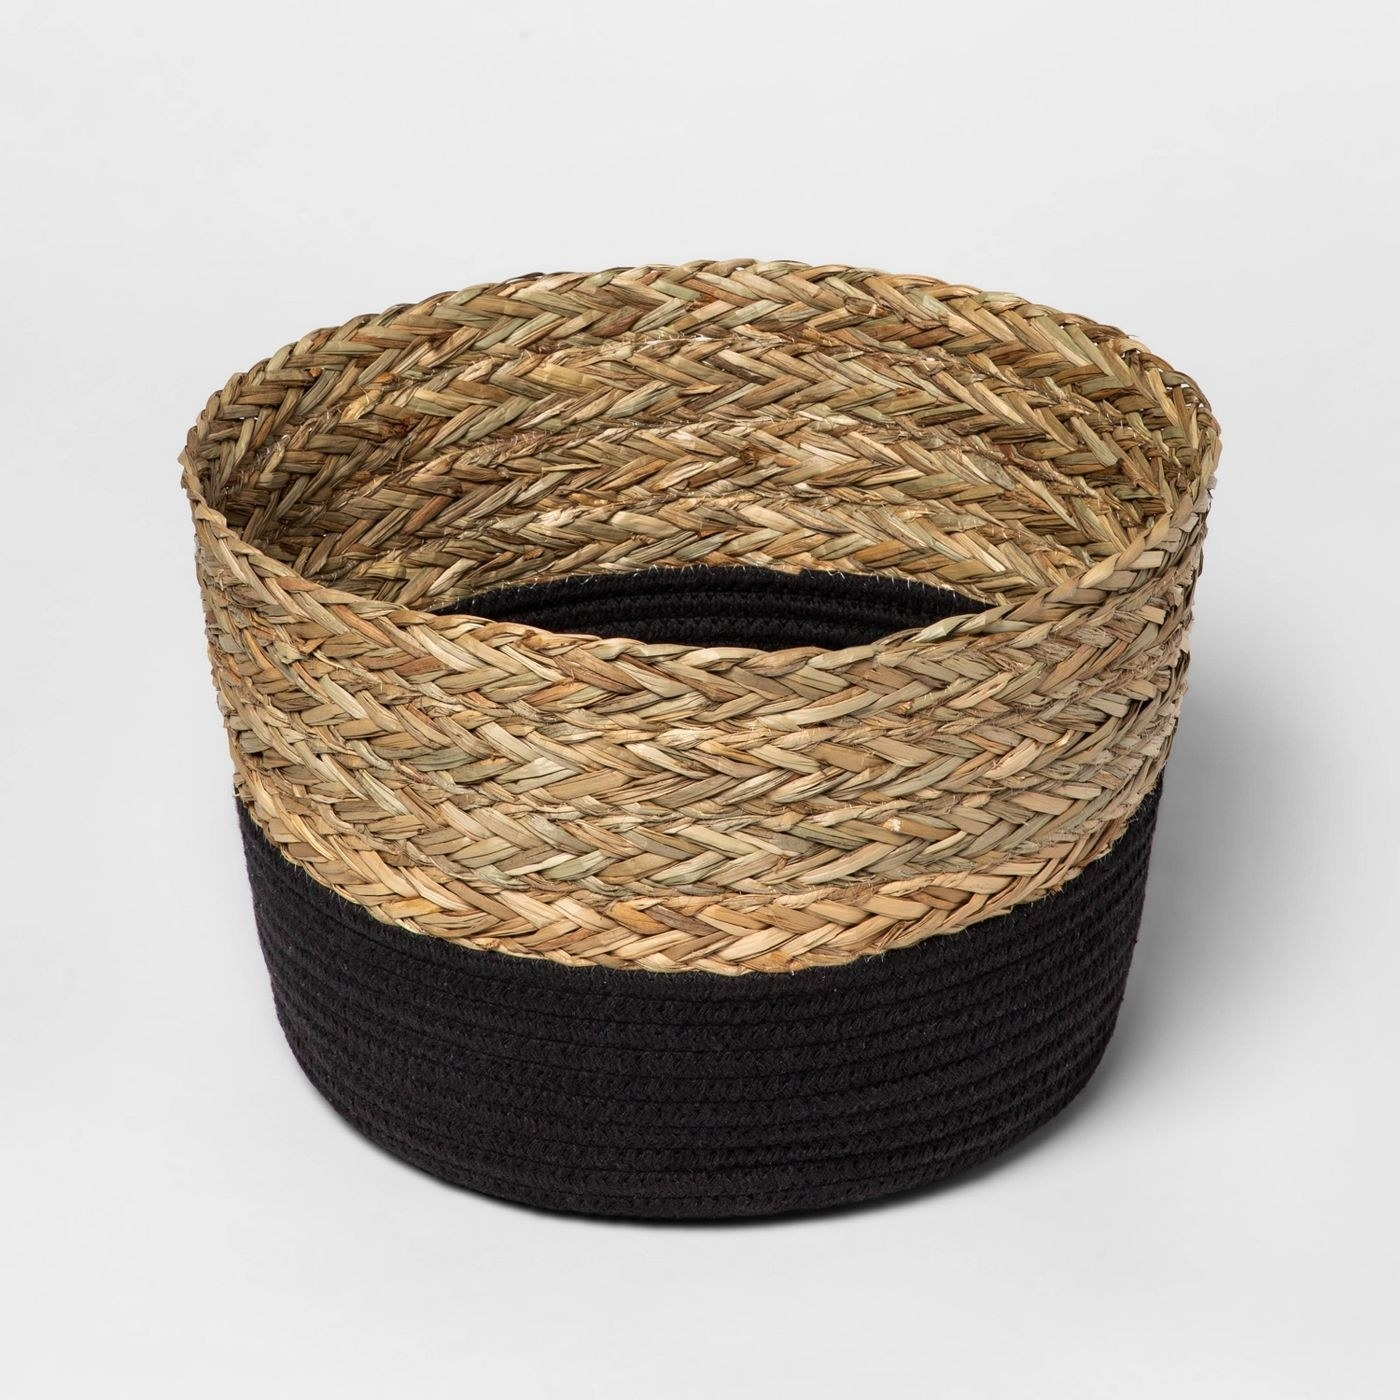 The rope basket, made from coiled black rope at the bottom, and braided straw-colored rope at the top, with a circular shape and open top